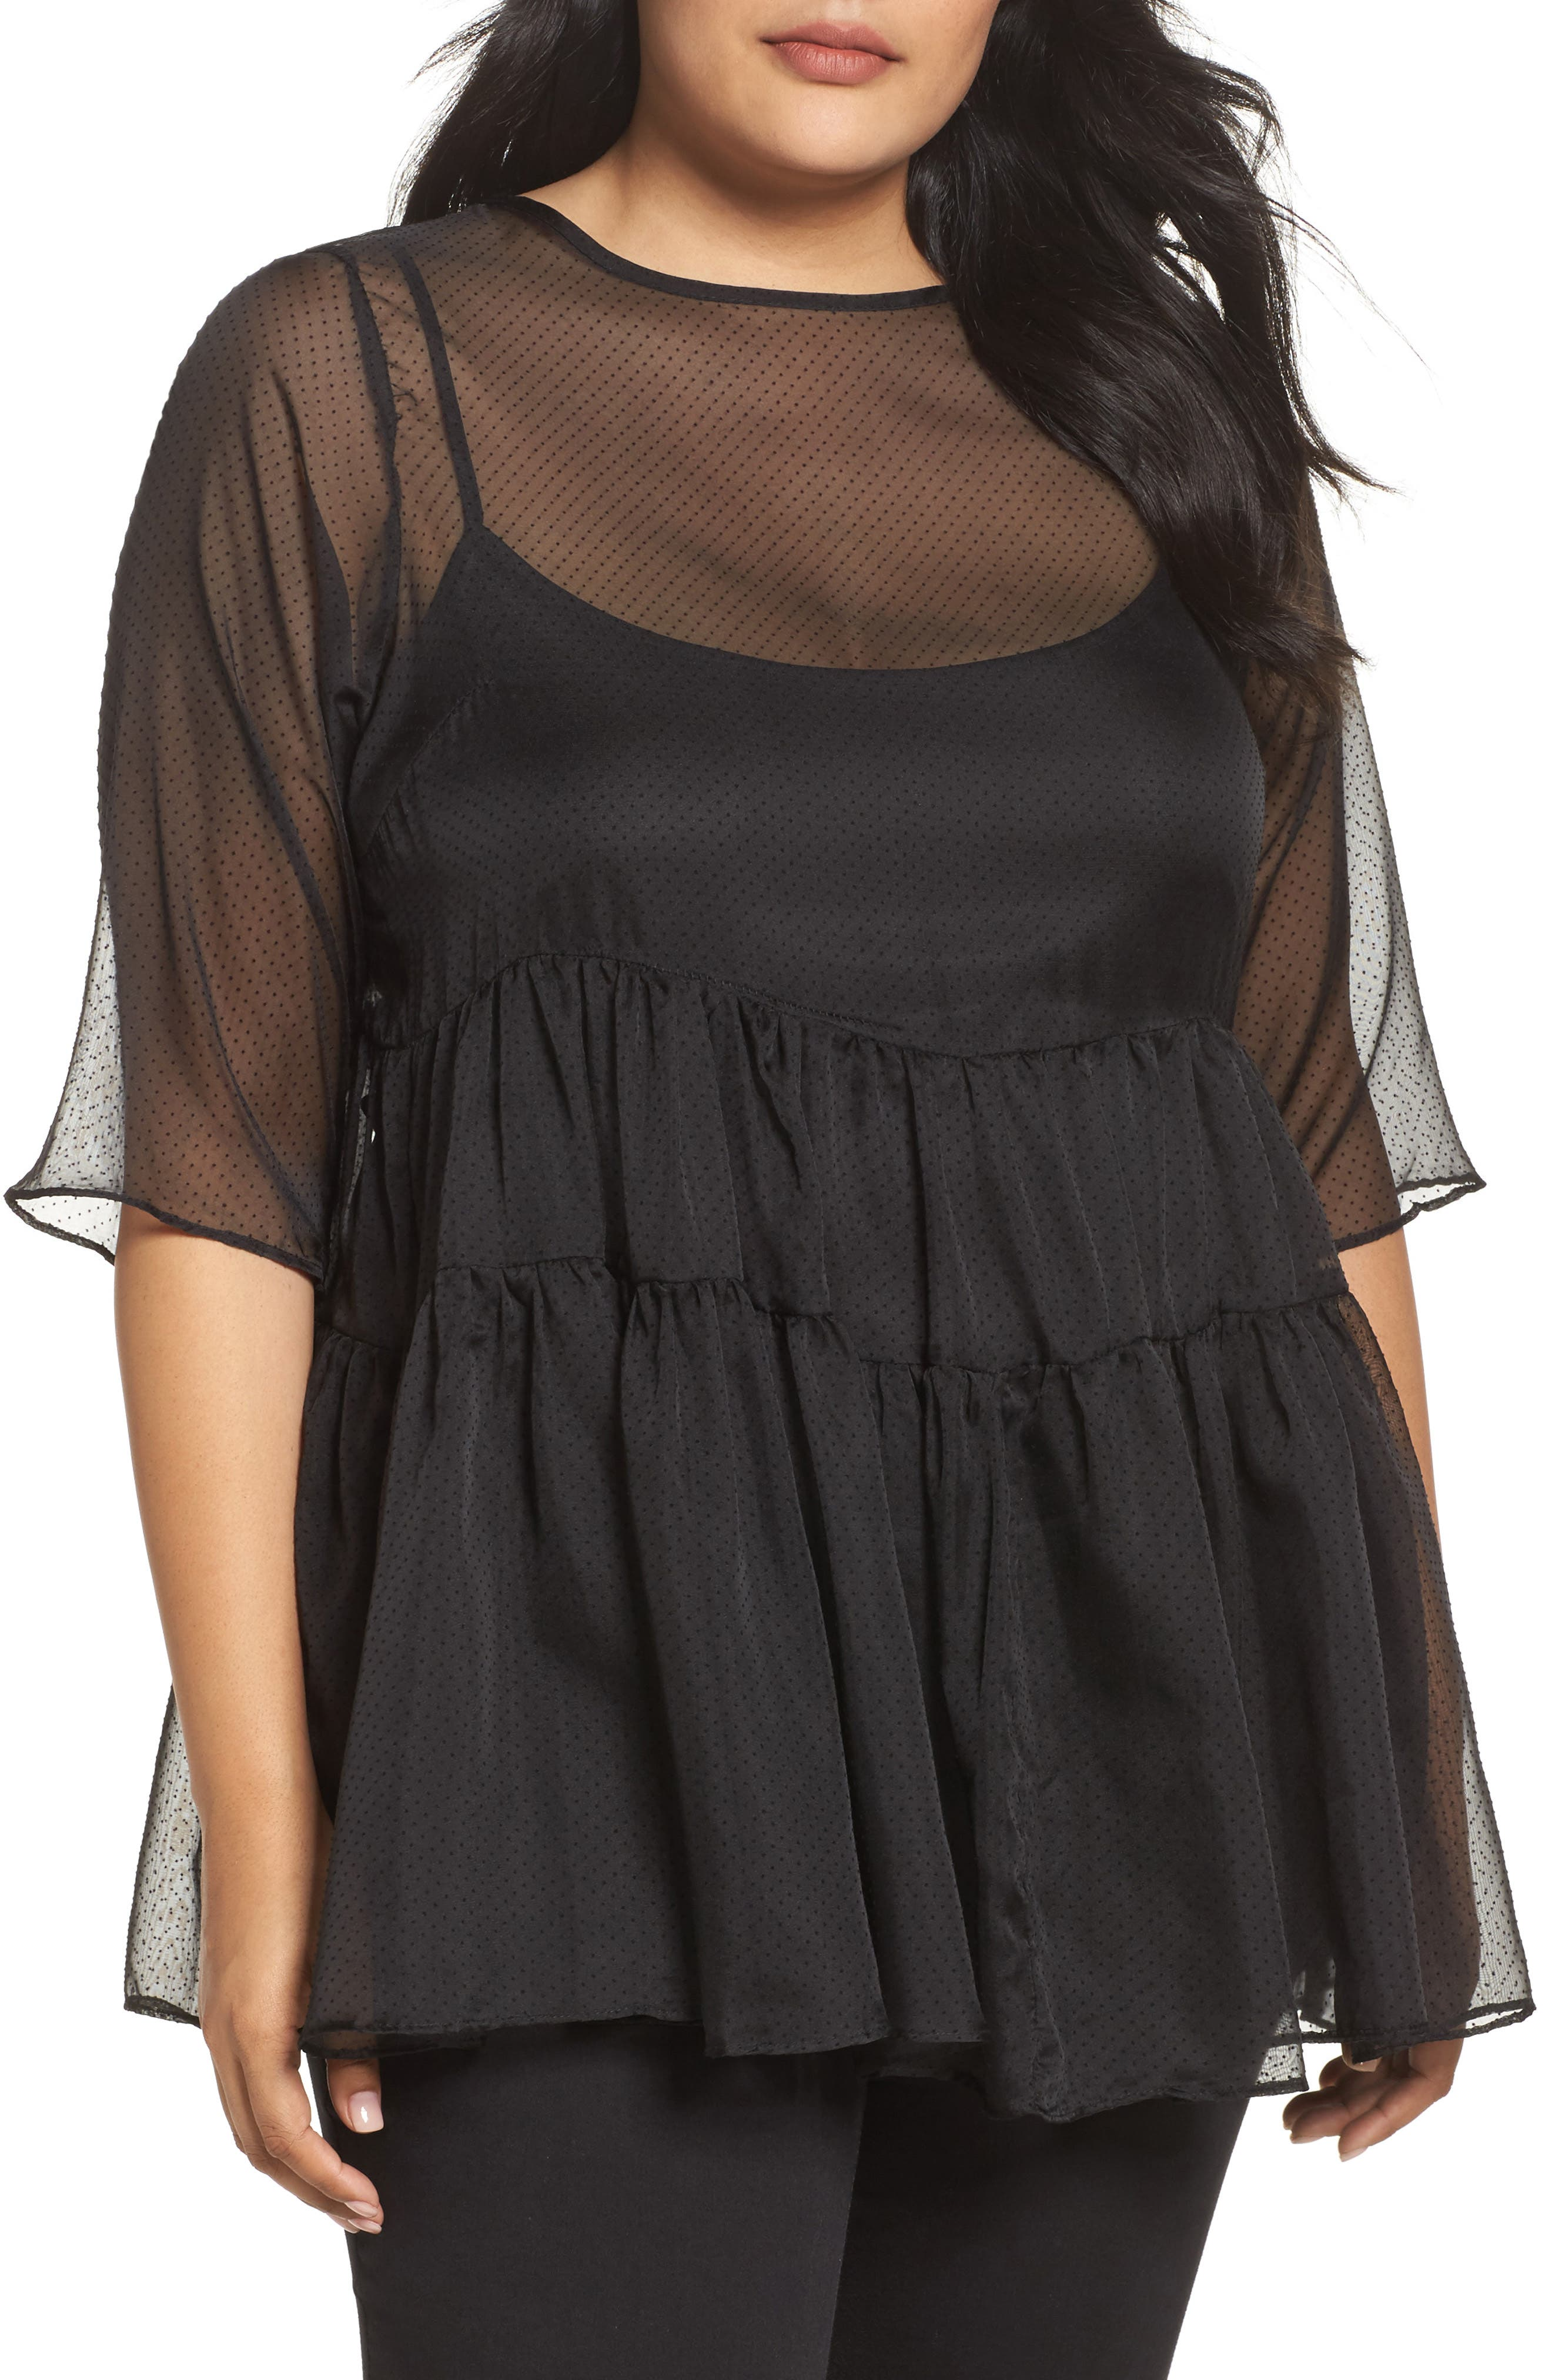 Alternate Image 1 Selected - LOST INK Ruffle Swiss Dot Top (Plus Size)